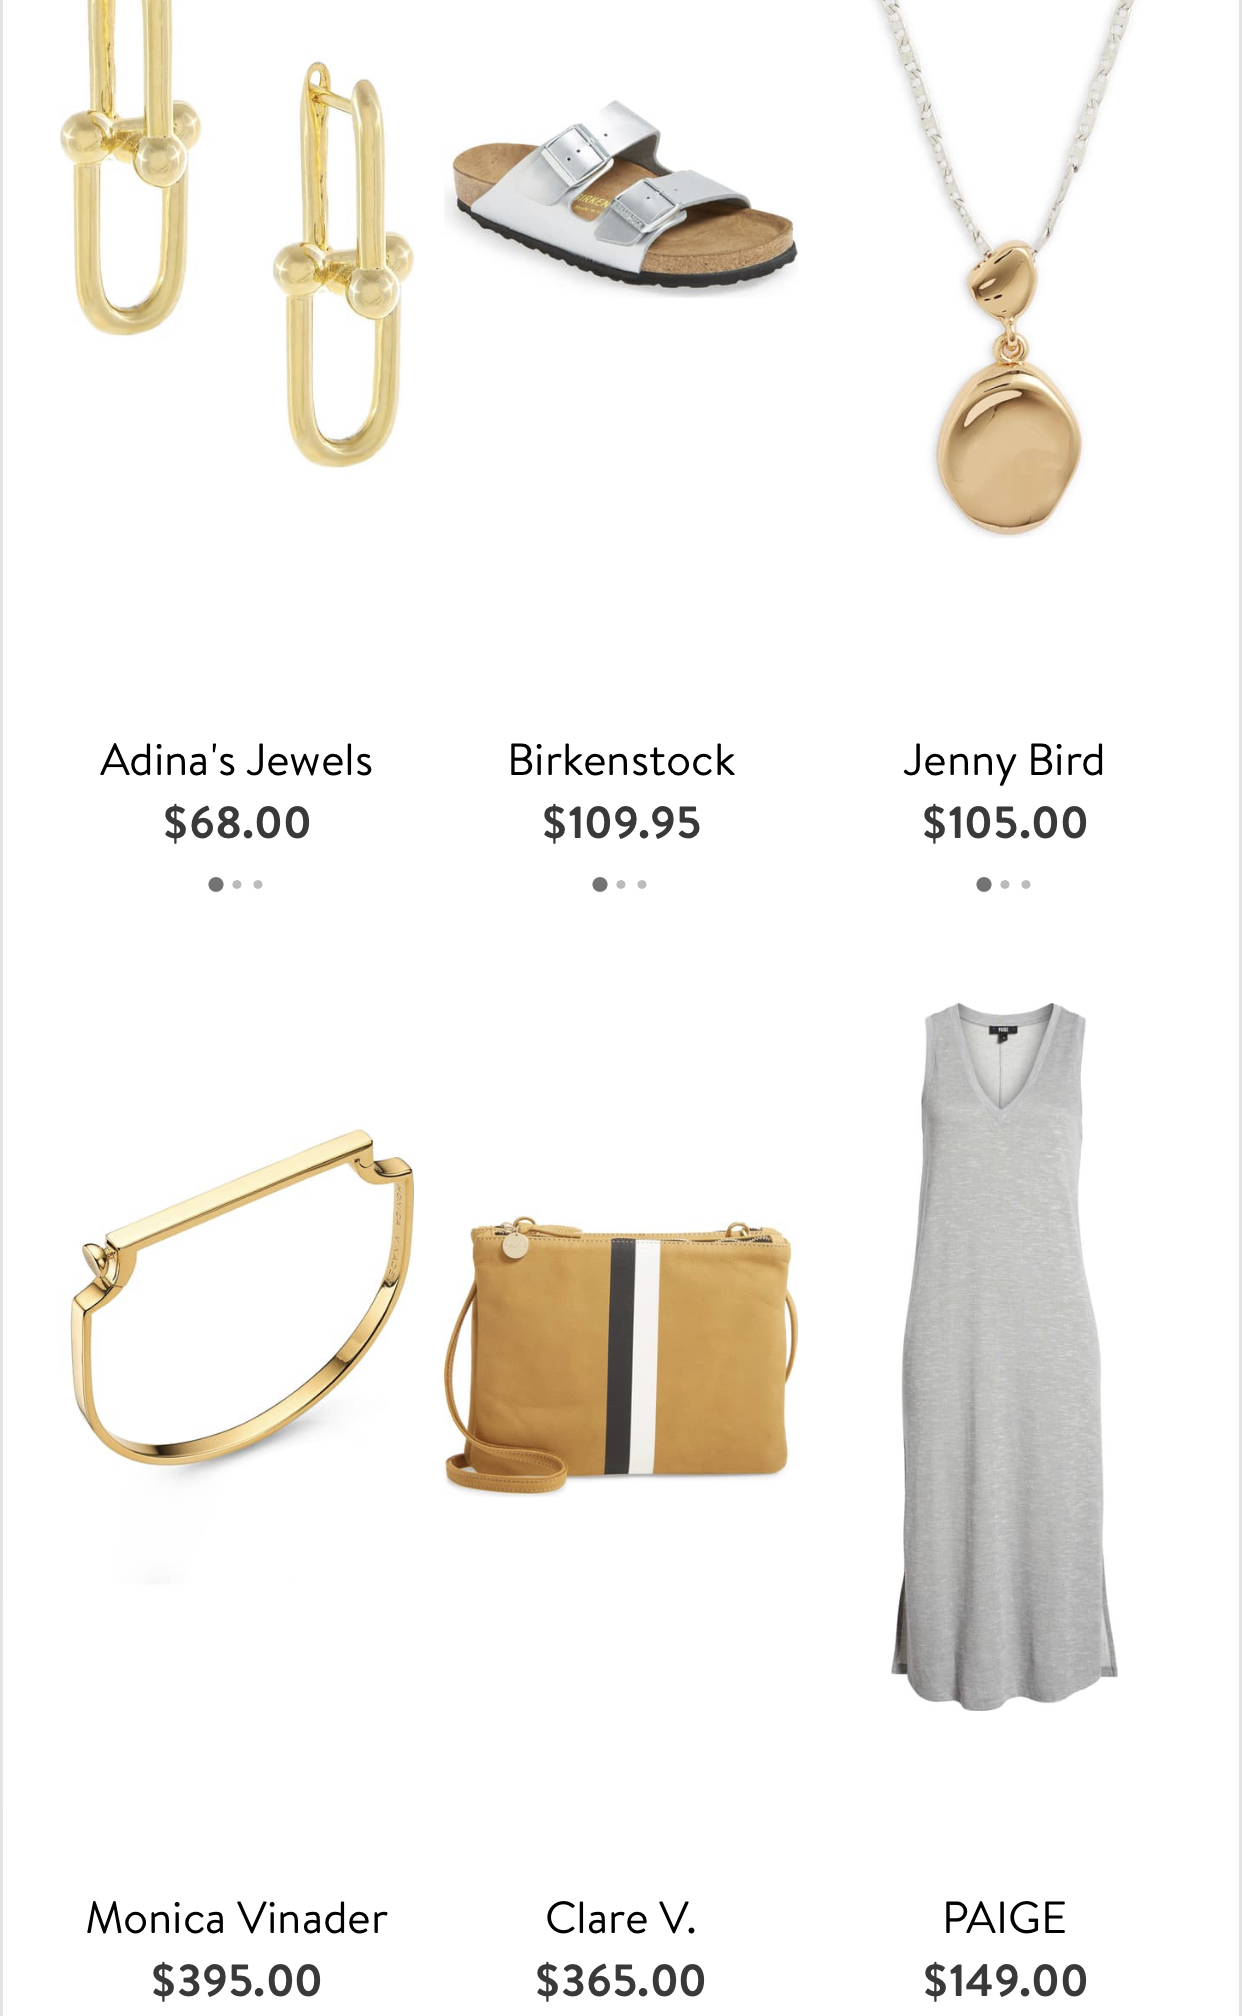 Style Board from my Nordstrom Stylist, loved these picks!{ }(Image: Nordstrom App){ }